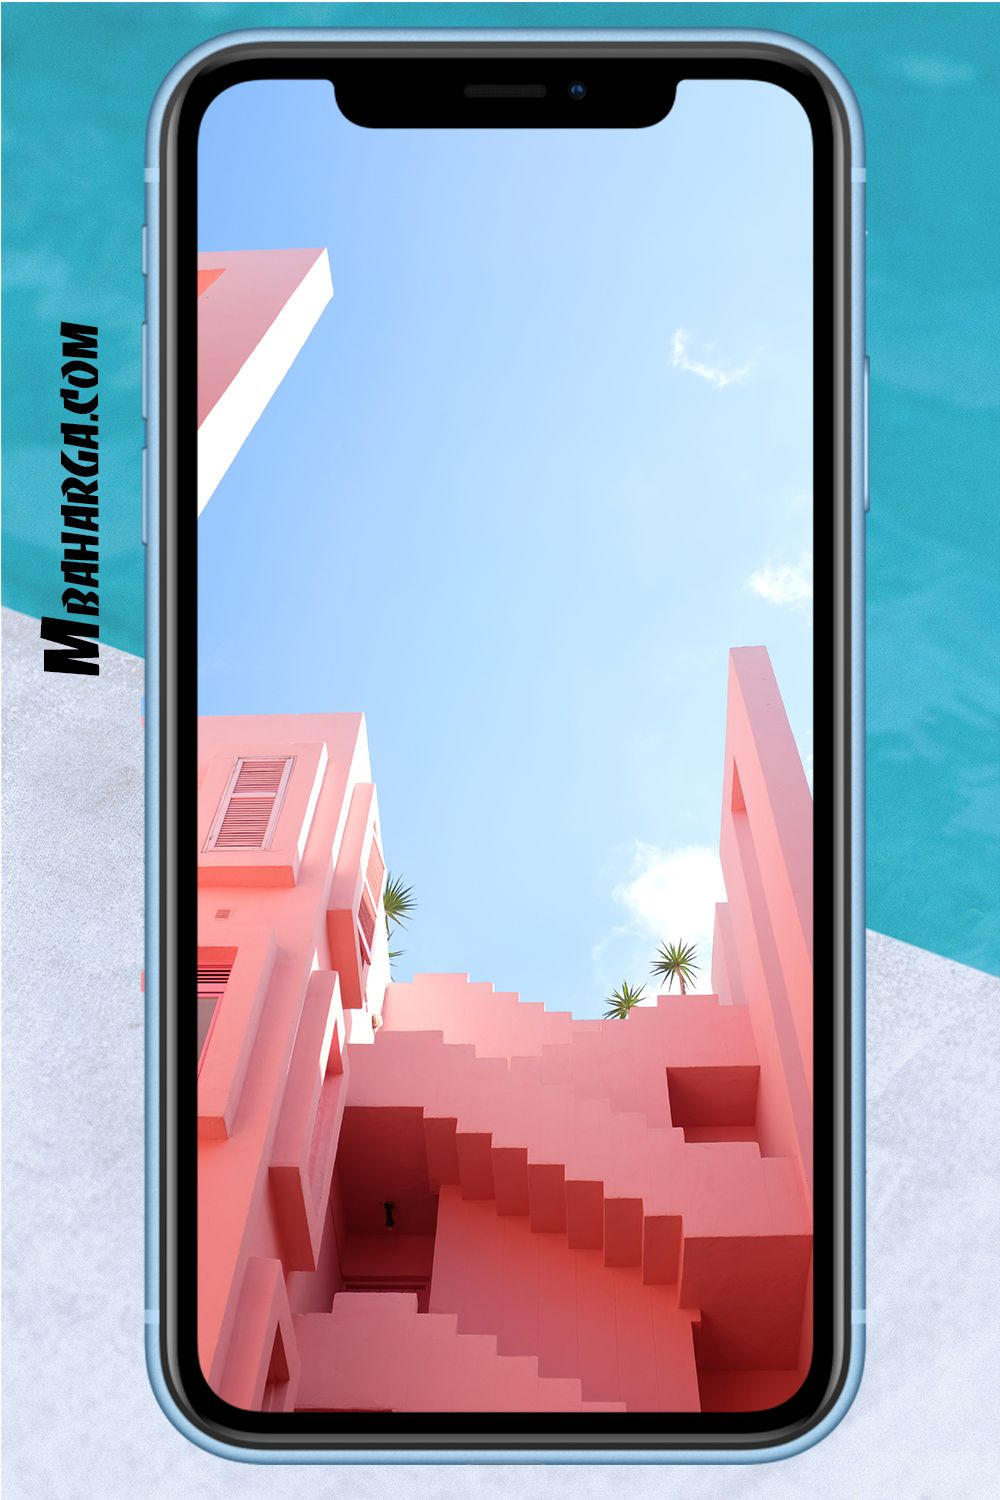 Iphone X Notch Hiding Wallpapers In 2020 Wallpaper Iphone Best Iphone